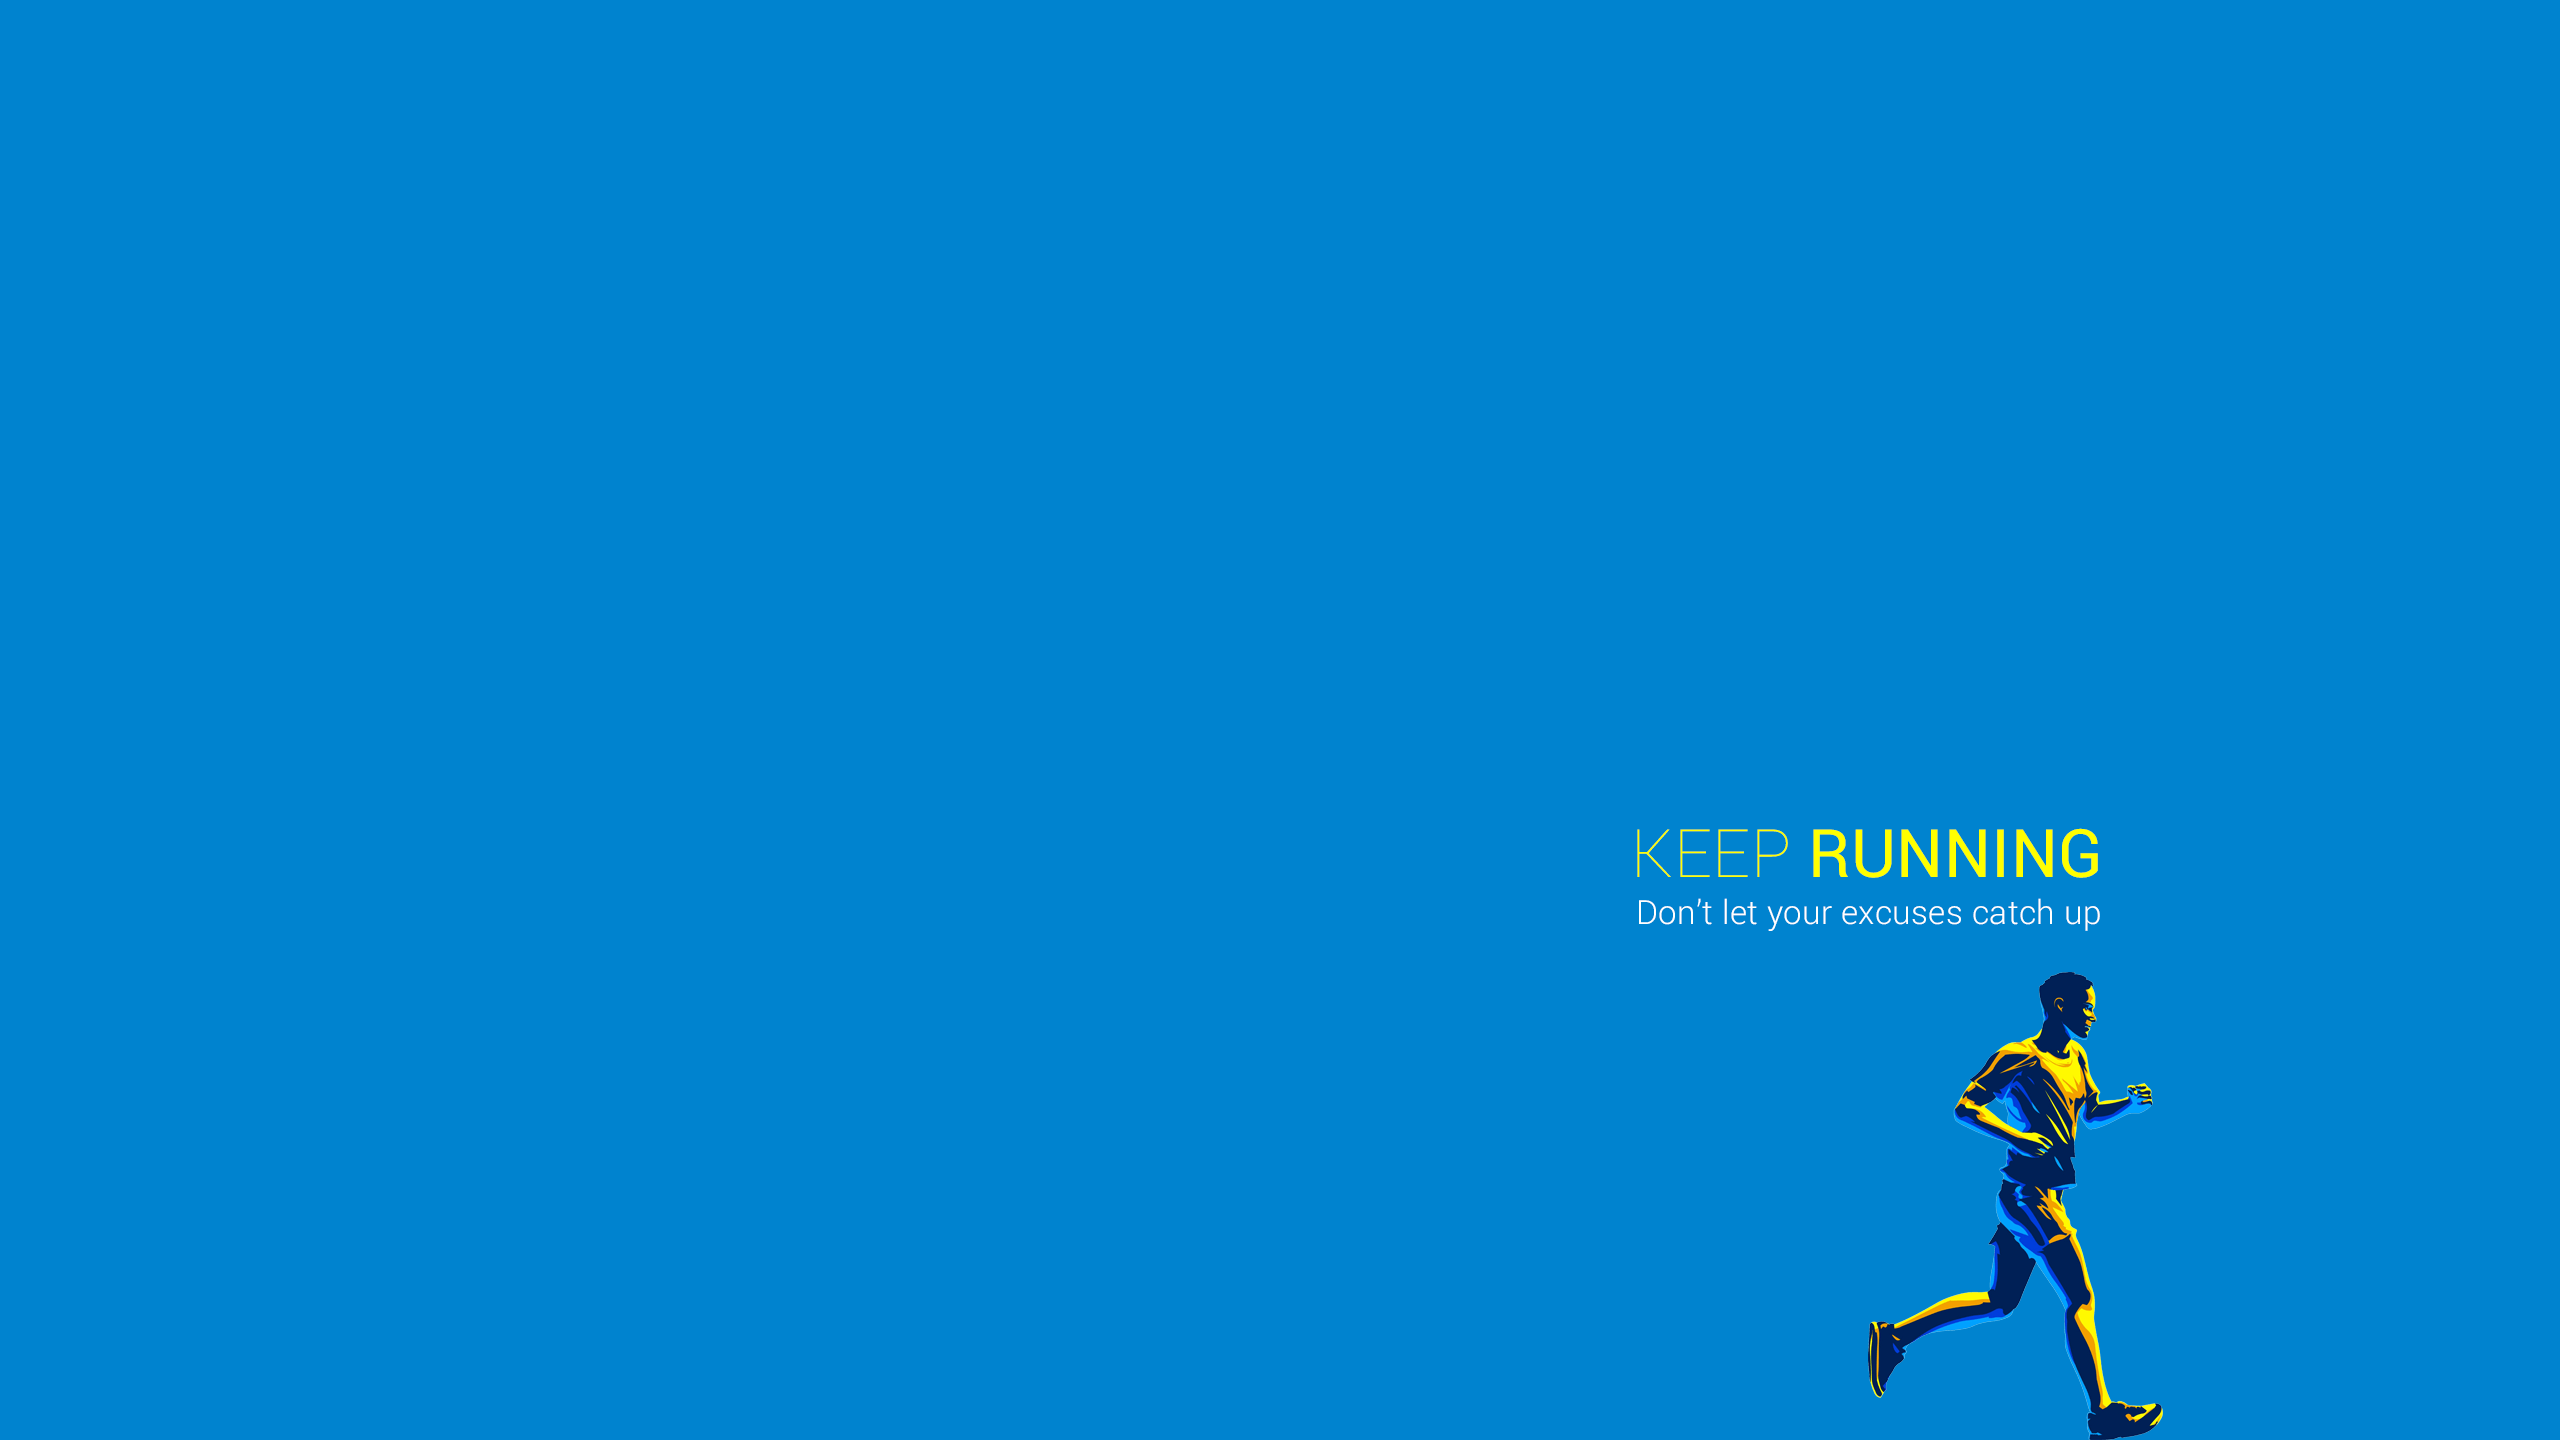 Download Free Running Backgrounds